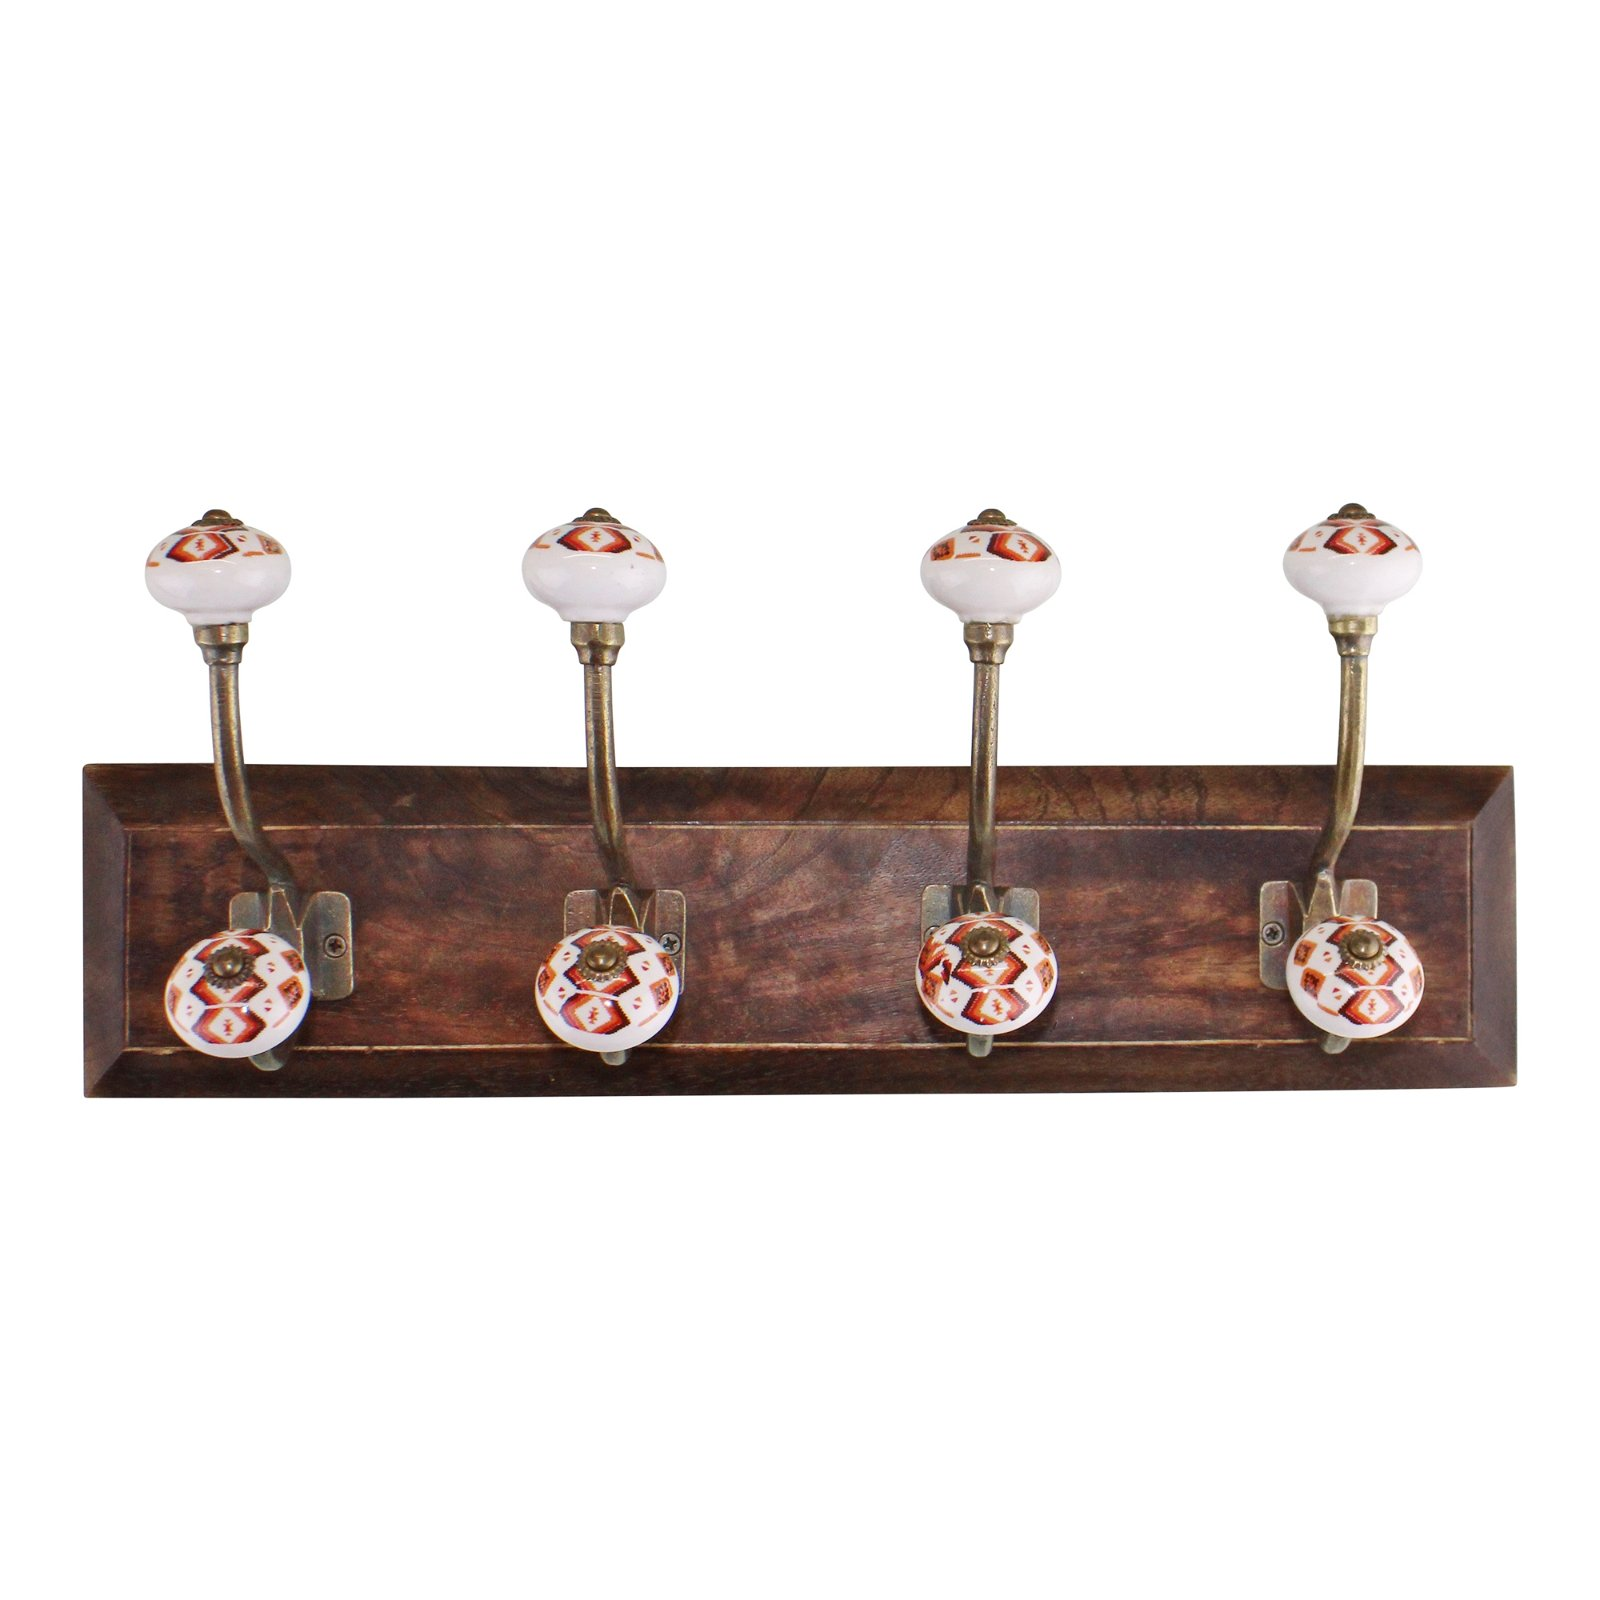 4 Double Coat Hooks, Kasbah Design on Wooden Base